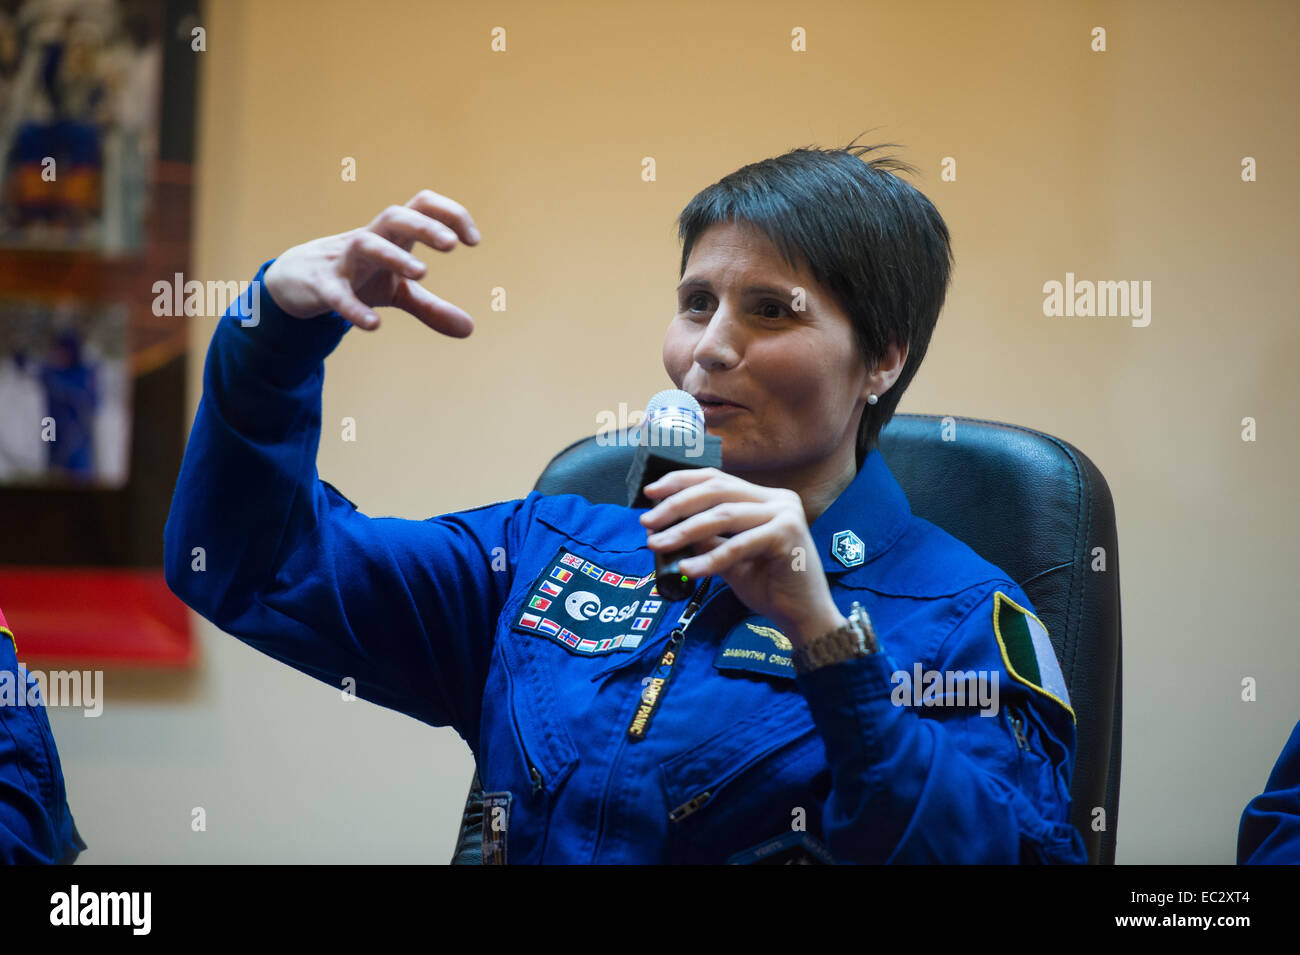 Expedition 42 Flight Engineer Samantha Cristoforetti of the European Space Agency (ESA) answers a question during - Stock Image